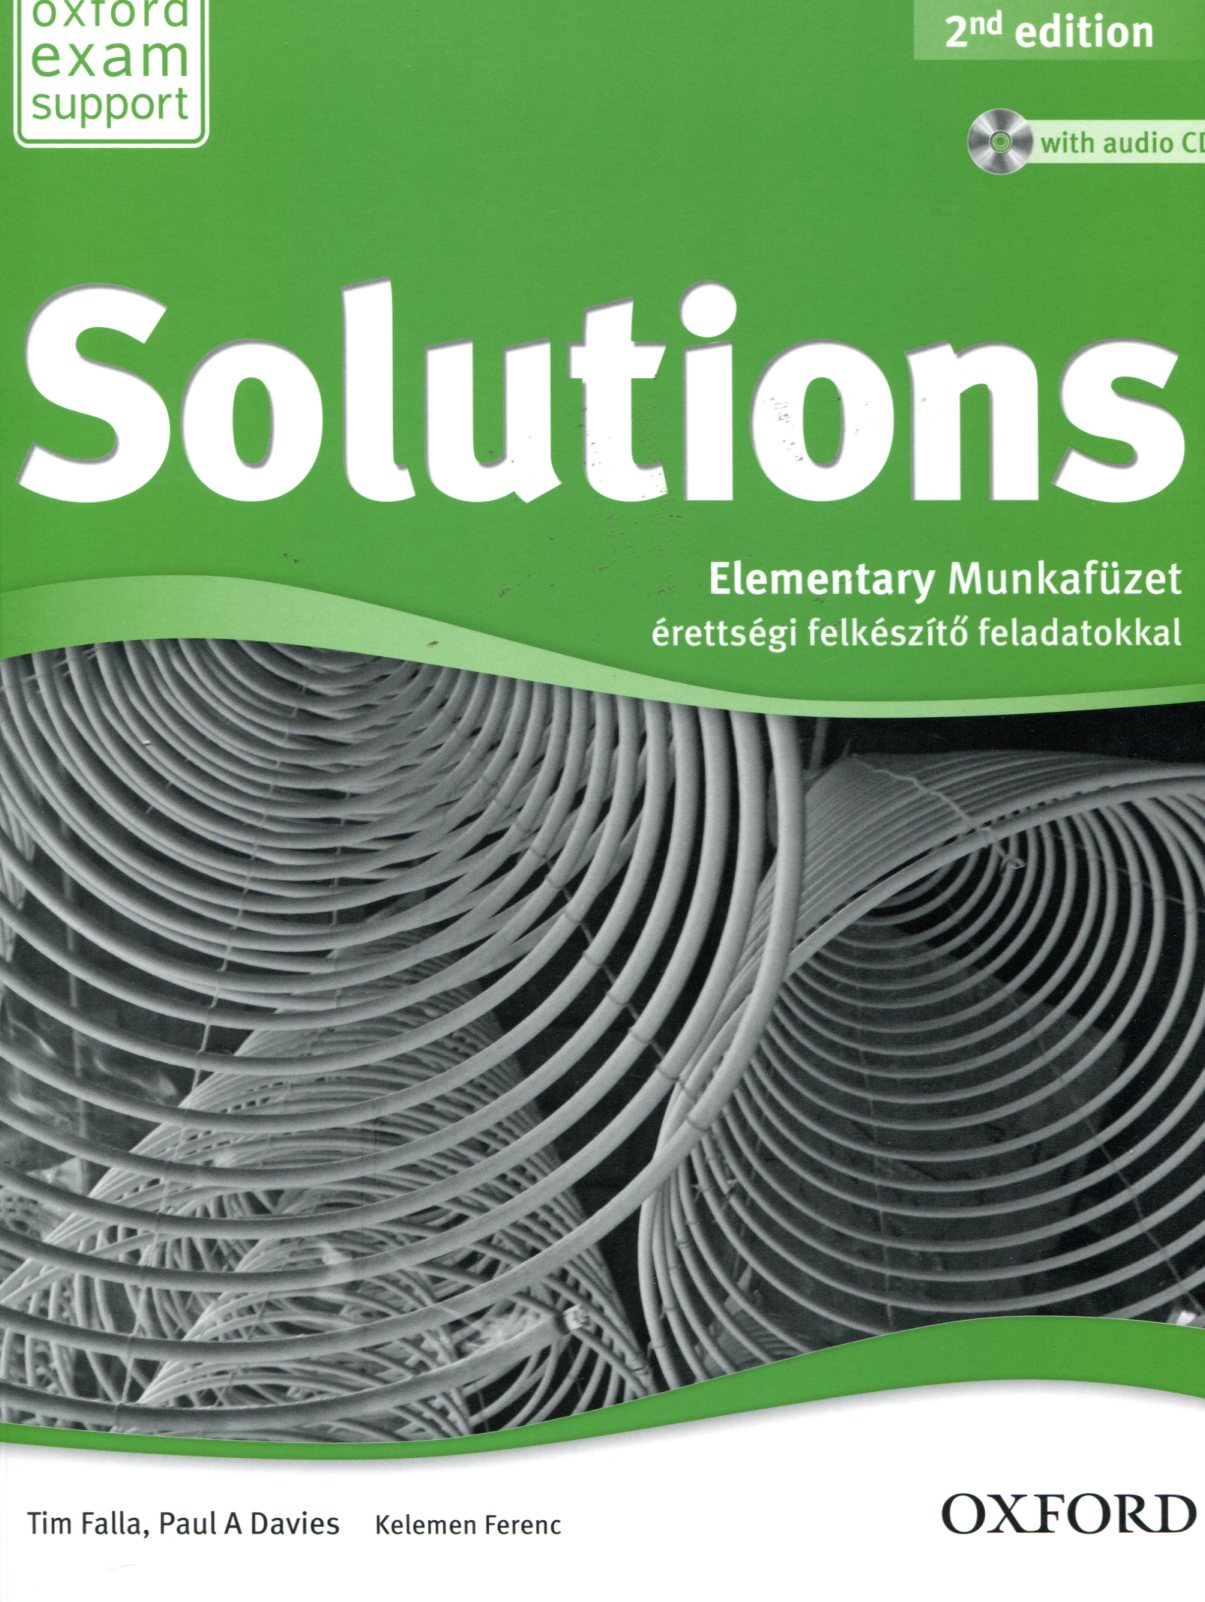 Solutions Elementary 2nd edition Munkafüzet + audio CD